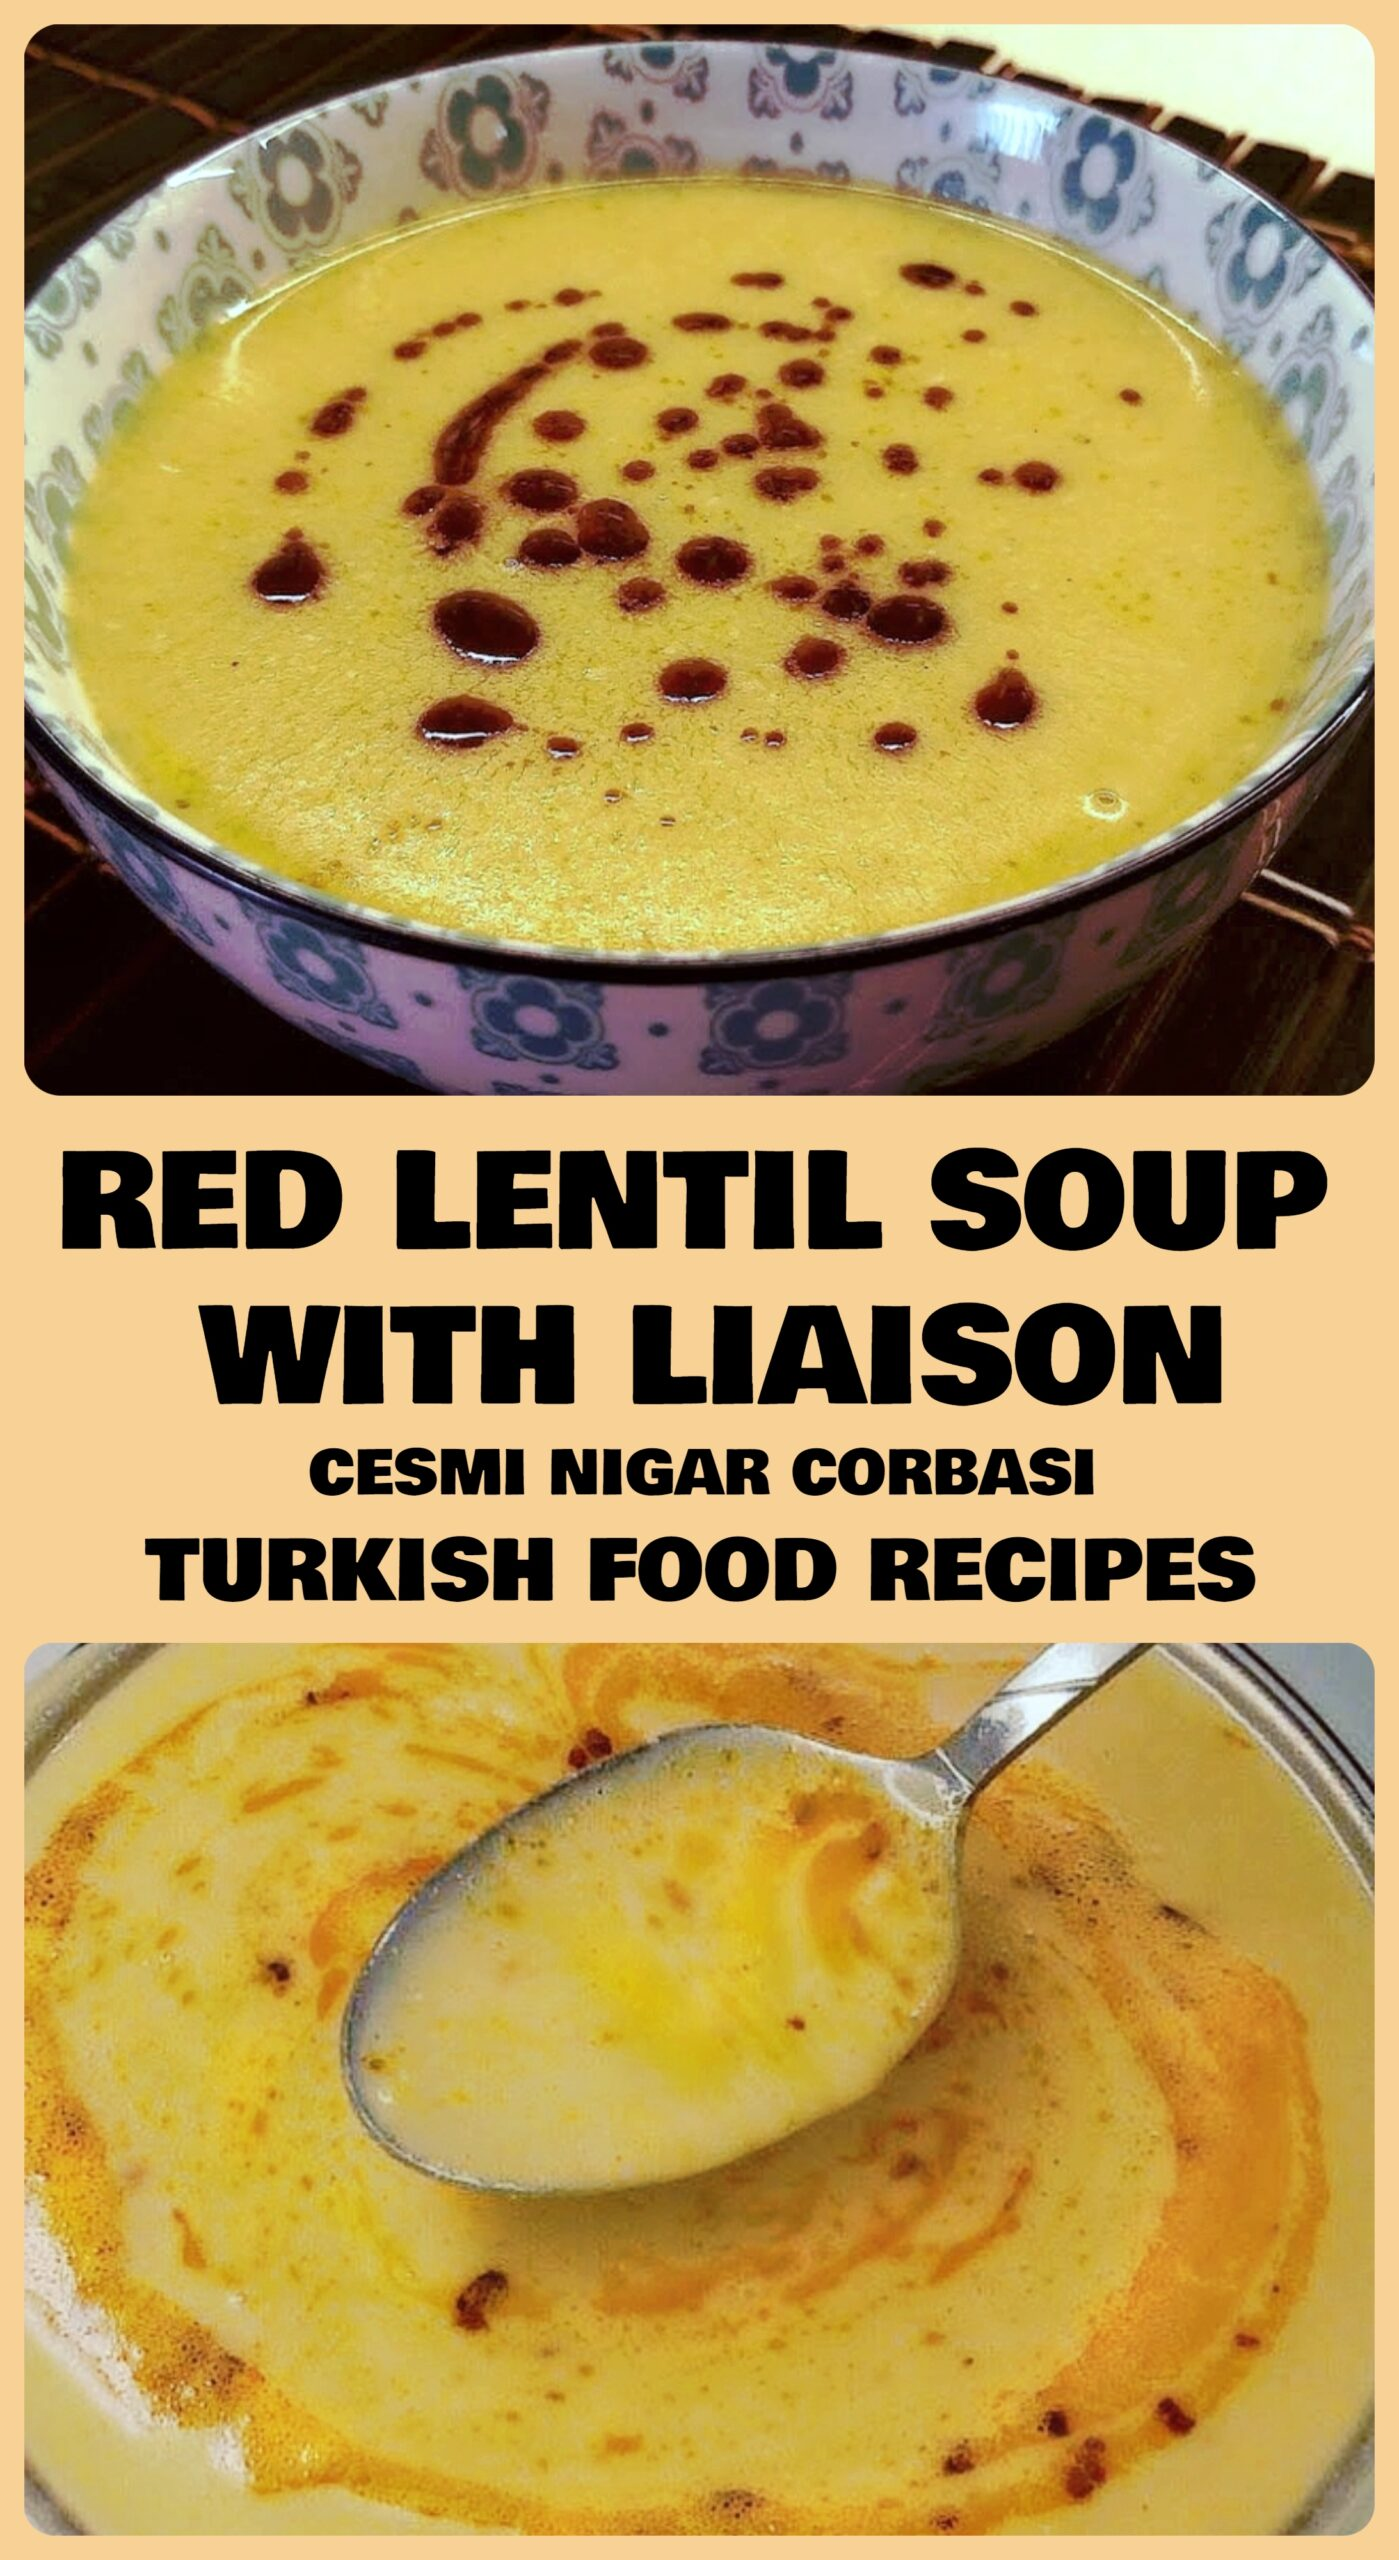 Red Lentil Soup With Liaison - Cesmi Nigar Corbasi Recipe